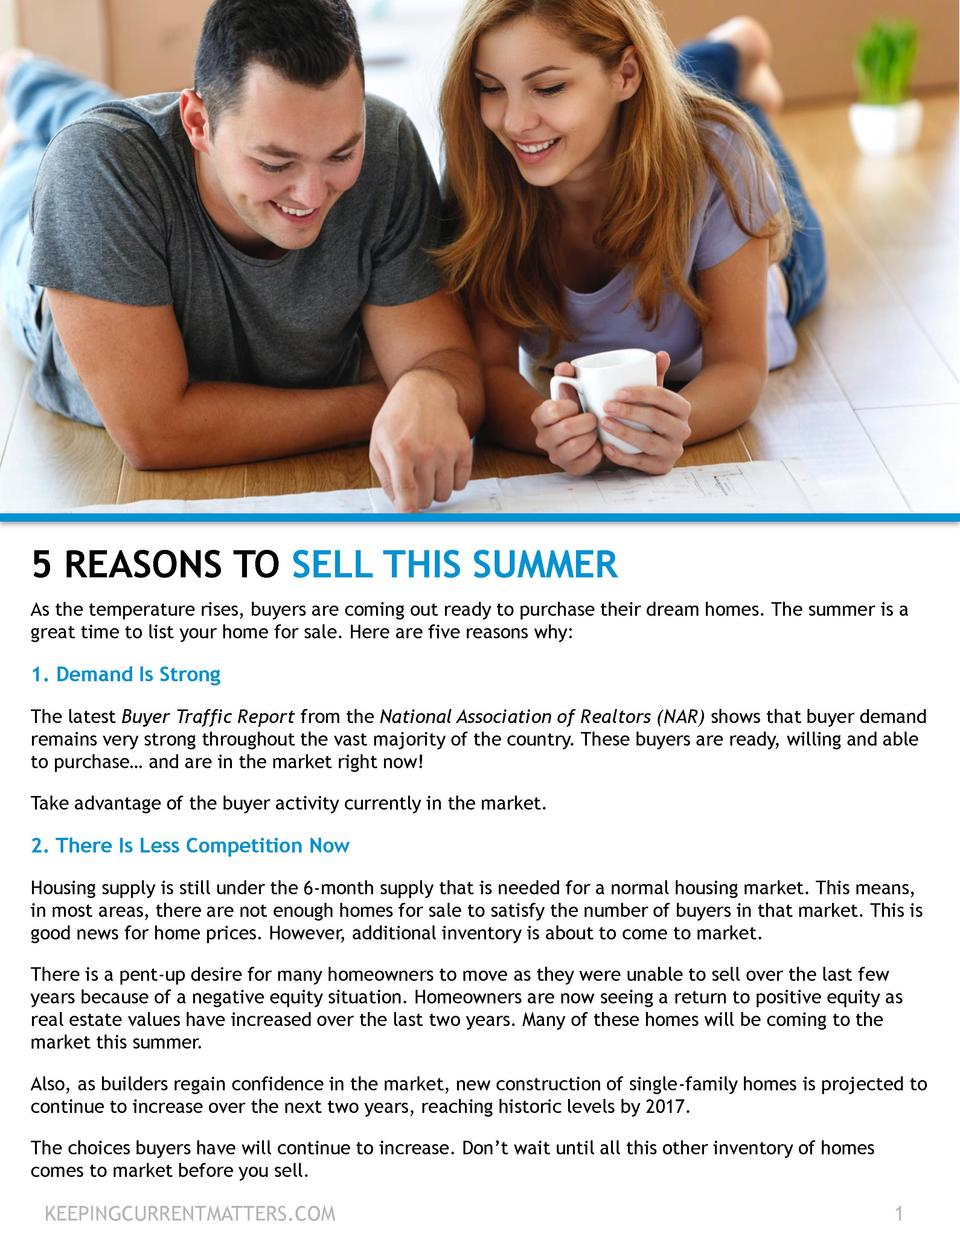 5 REASONS TO SELL THIS SUMMER As the temperature rises, buyers are coming out ready to purchase their dream homes. The sum...